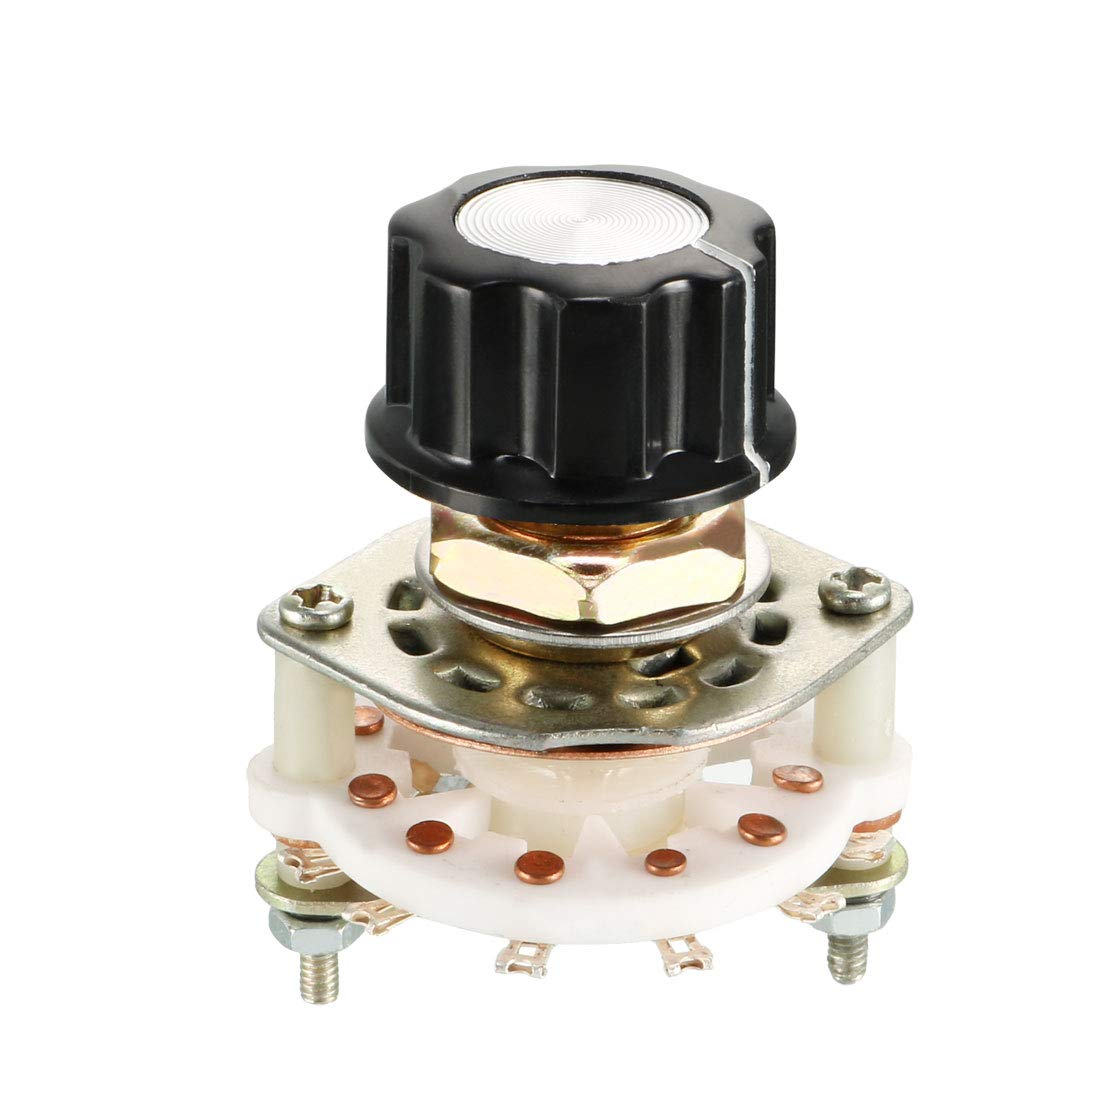 uxcell 1P7T 1 Pole 7 Position Selectable 1Deck Band Selector Rotary Switch with Plastic Knob